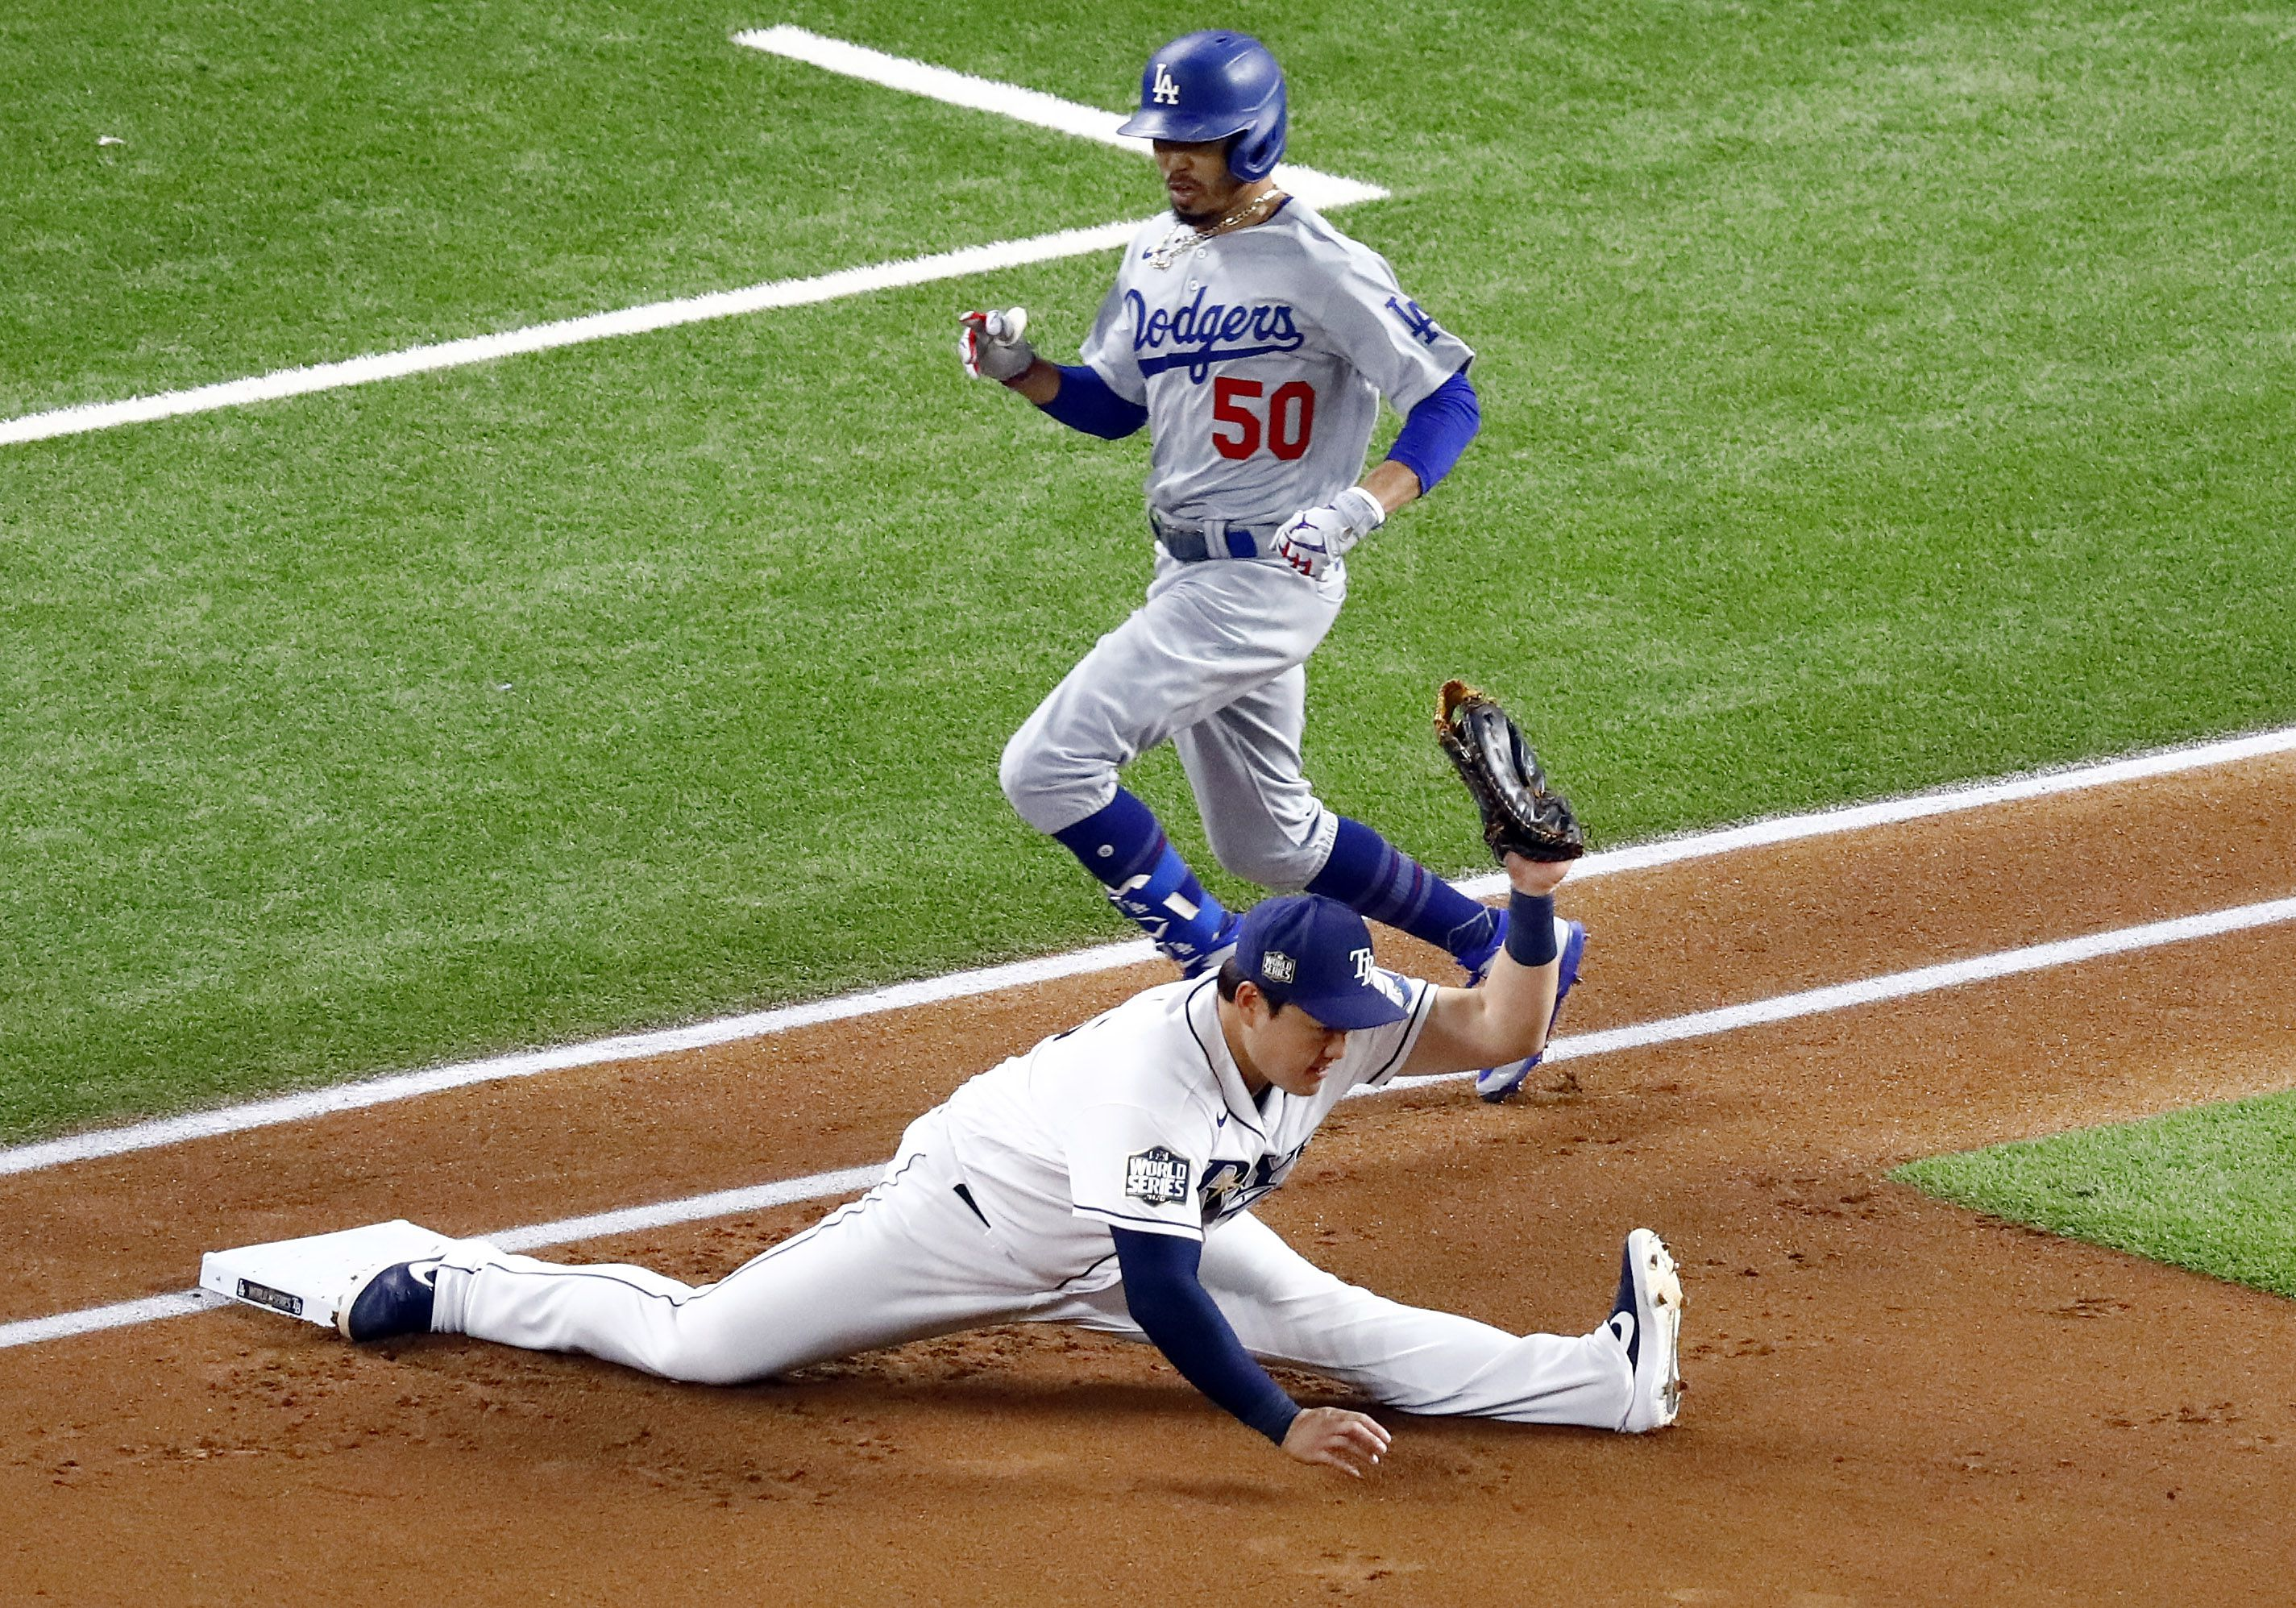 photos tampa bay rays ji man choi does the splits and more from game 3 of dallas morning news